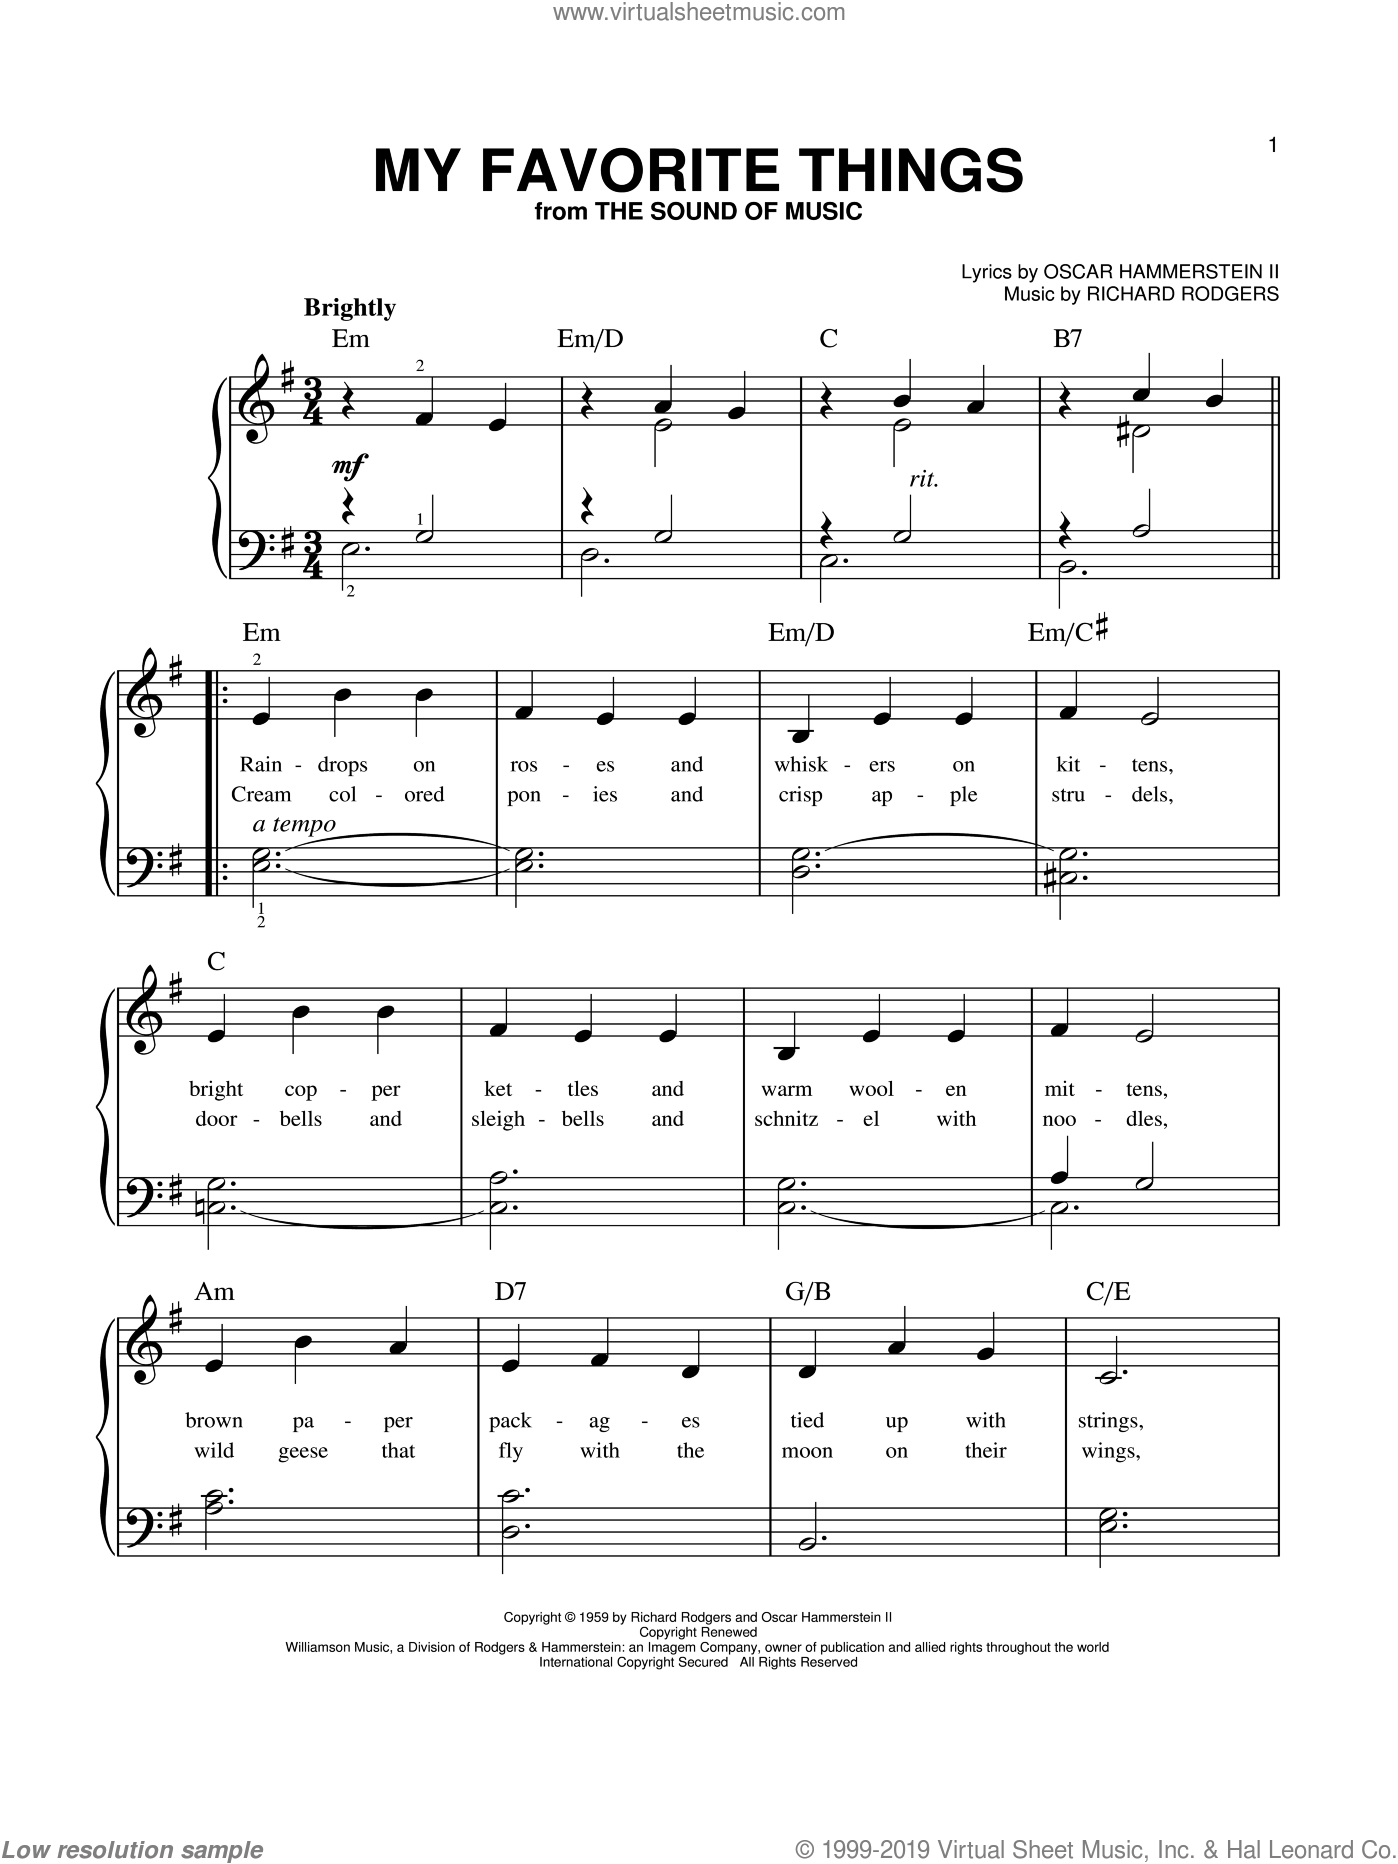 Download And Print My Favorite Things Beginner Sheet Music For Piano Solo By Rodgers Hammerstein High Q In 2020 Sheet Music Digital Sheet Music Piano Sheet Music